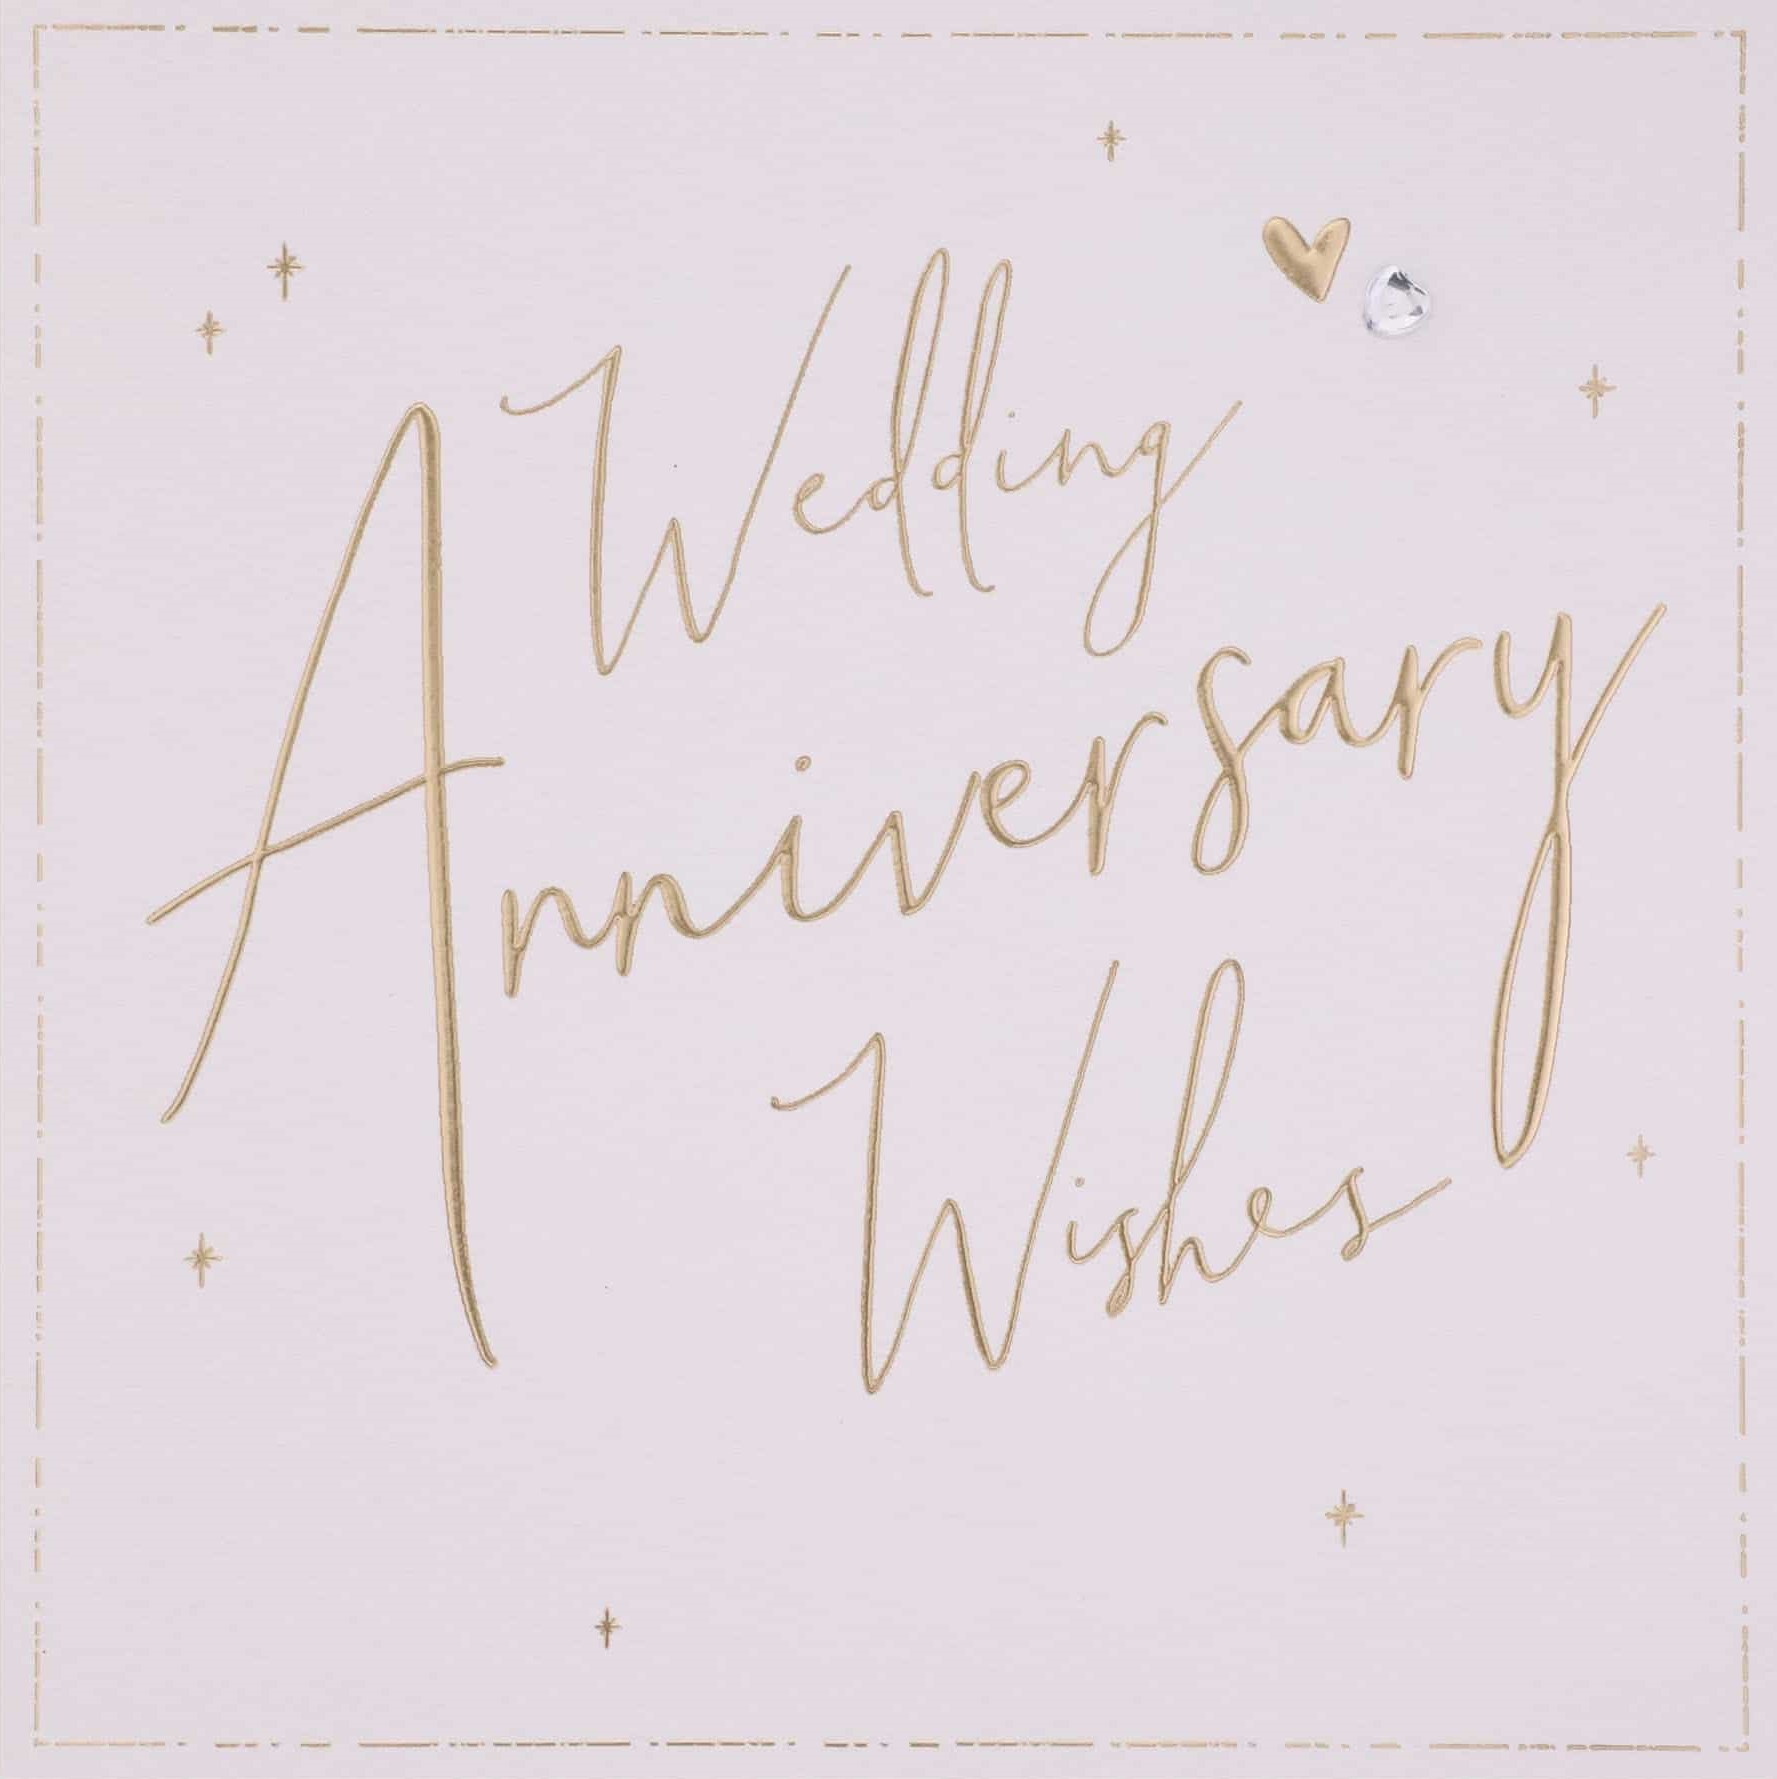 A blush pink card with 'Wedding Anniversary Wishes' printed on it in gold.